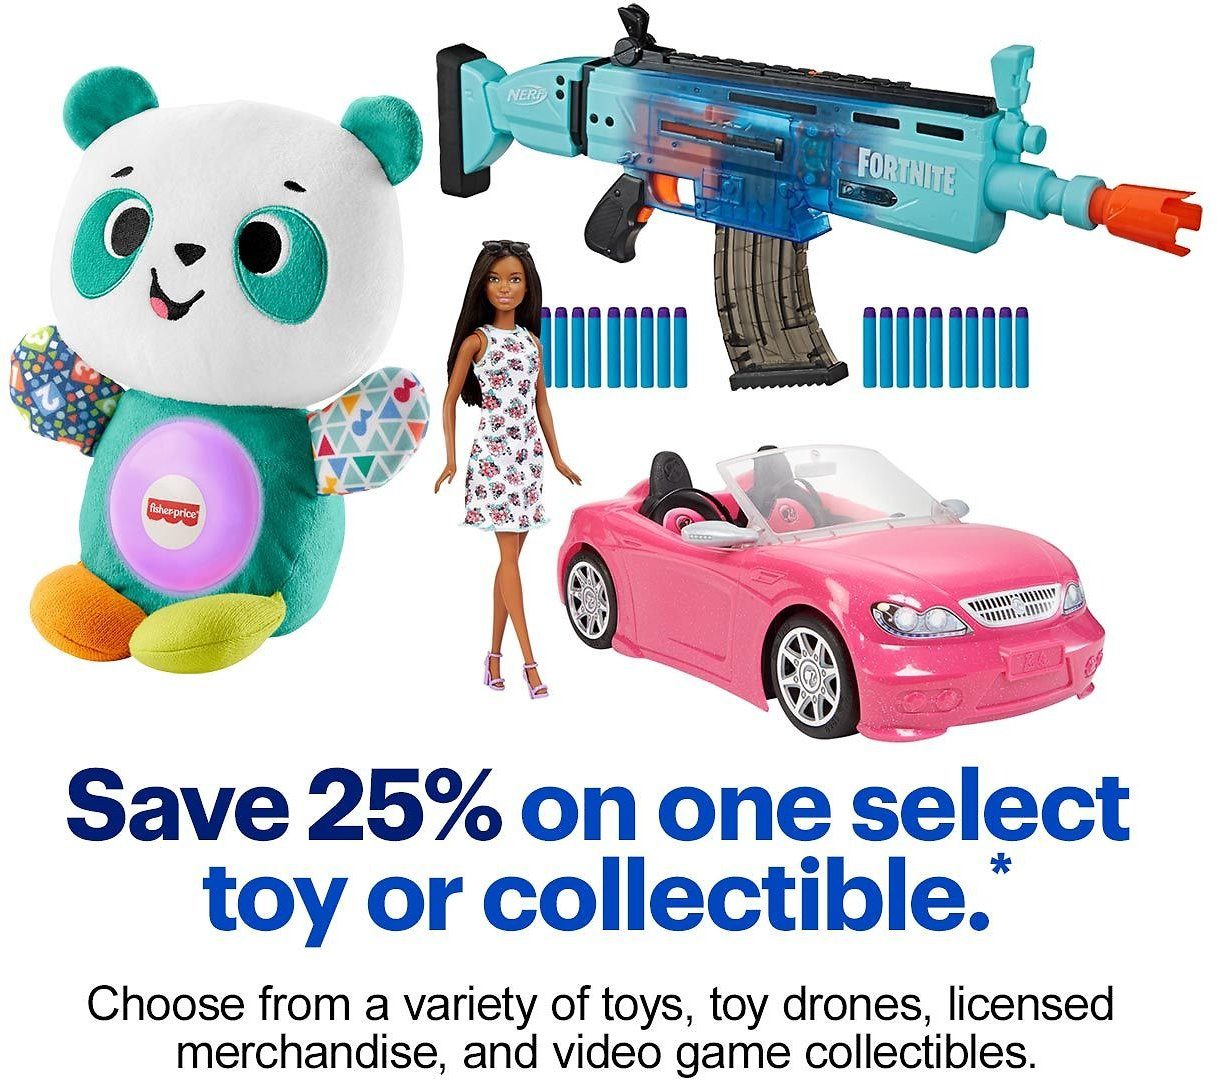 Save 25% On One Toy - Best Buy